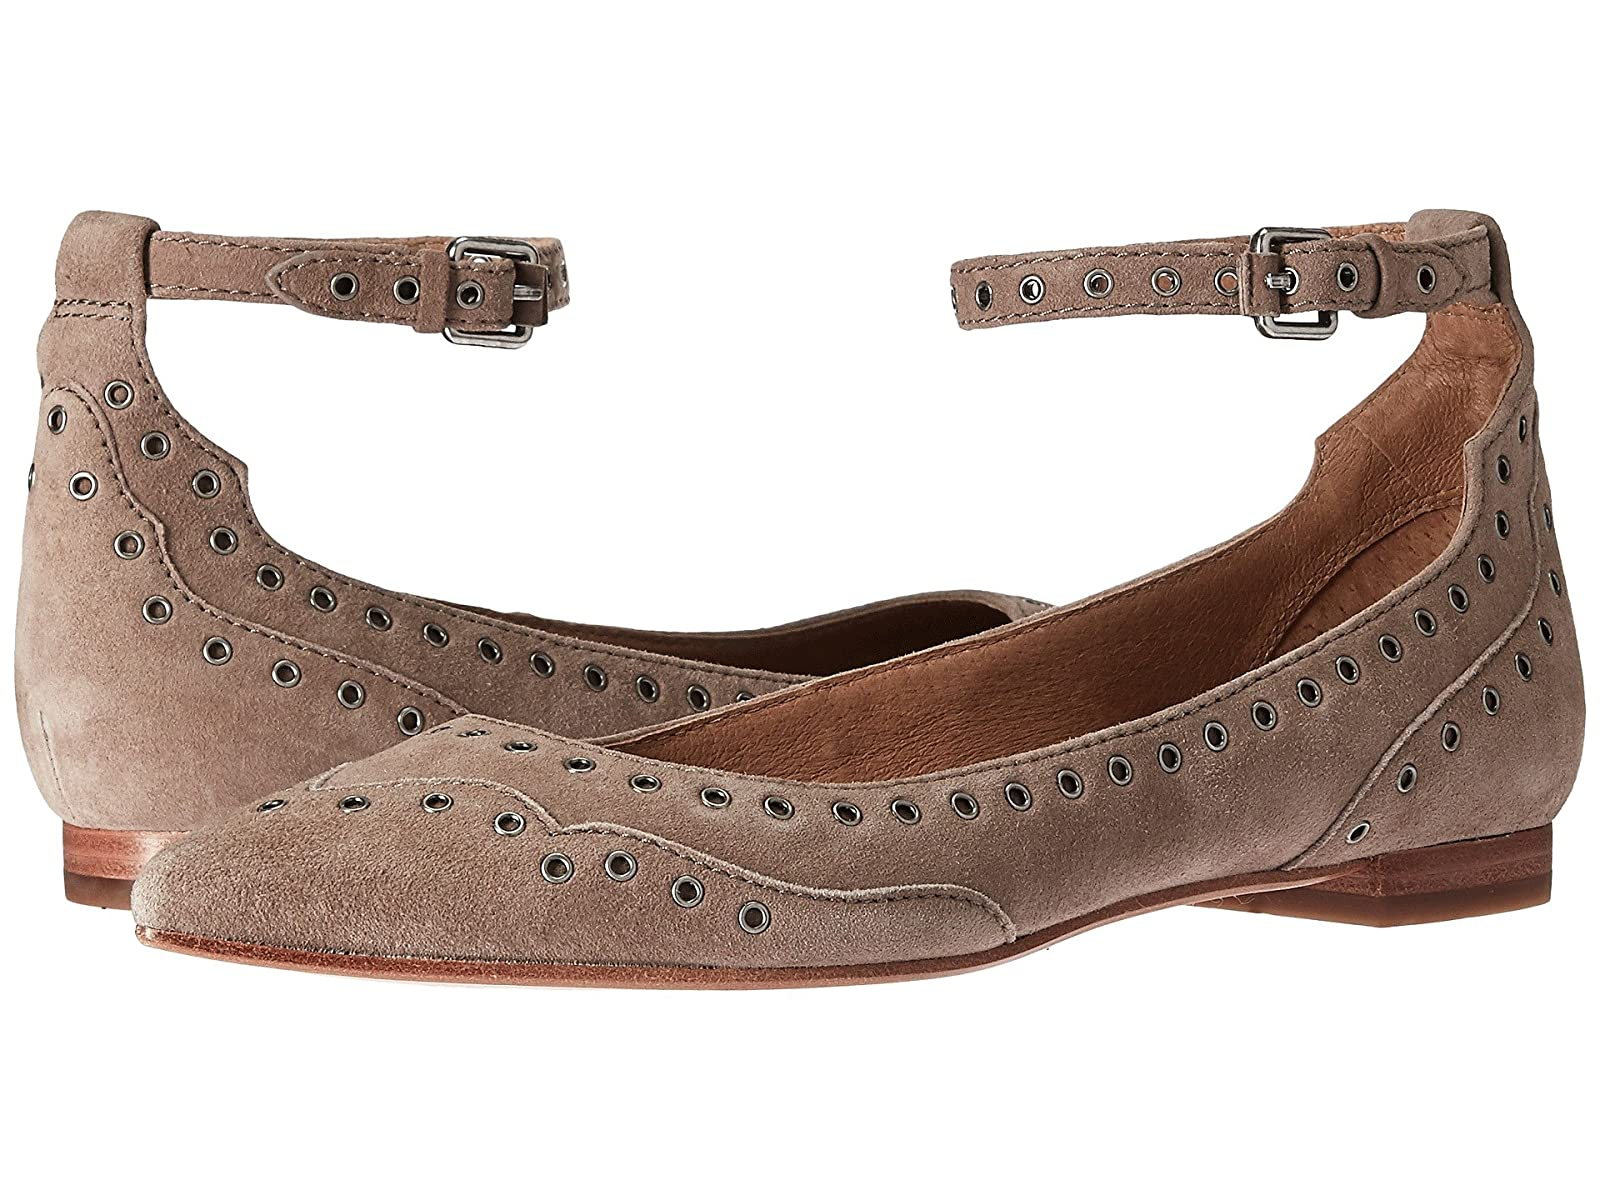 Frye Sienna Grommet AnkleCheap and distinctive eye-catching shoes